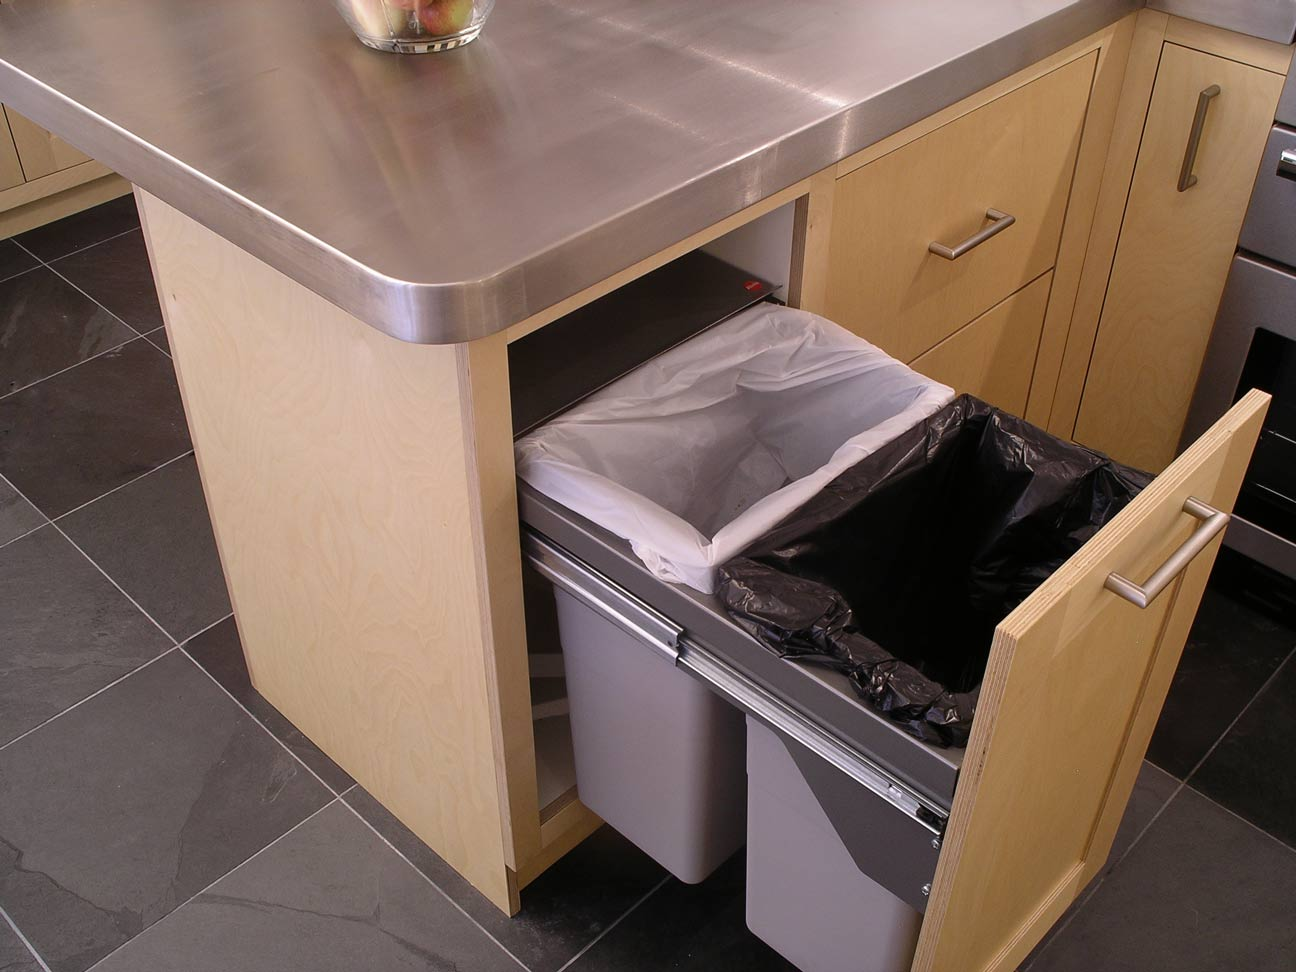 pull-out kitchen bins in fitted kitchen